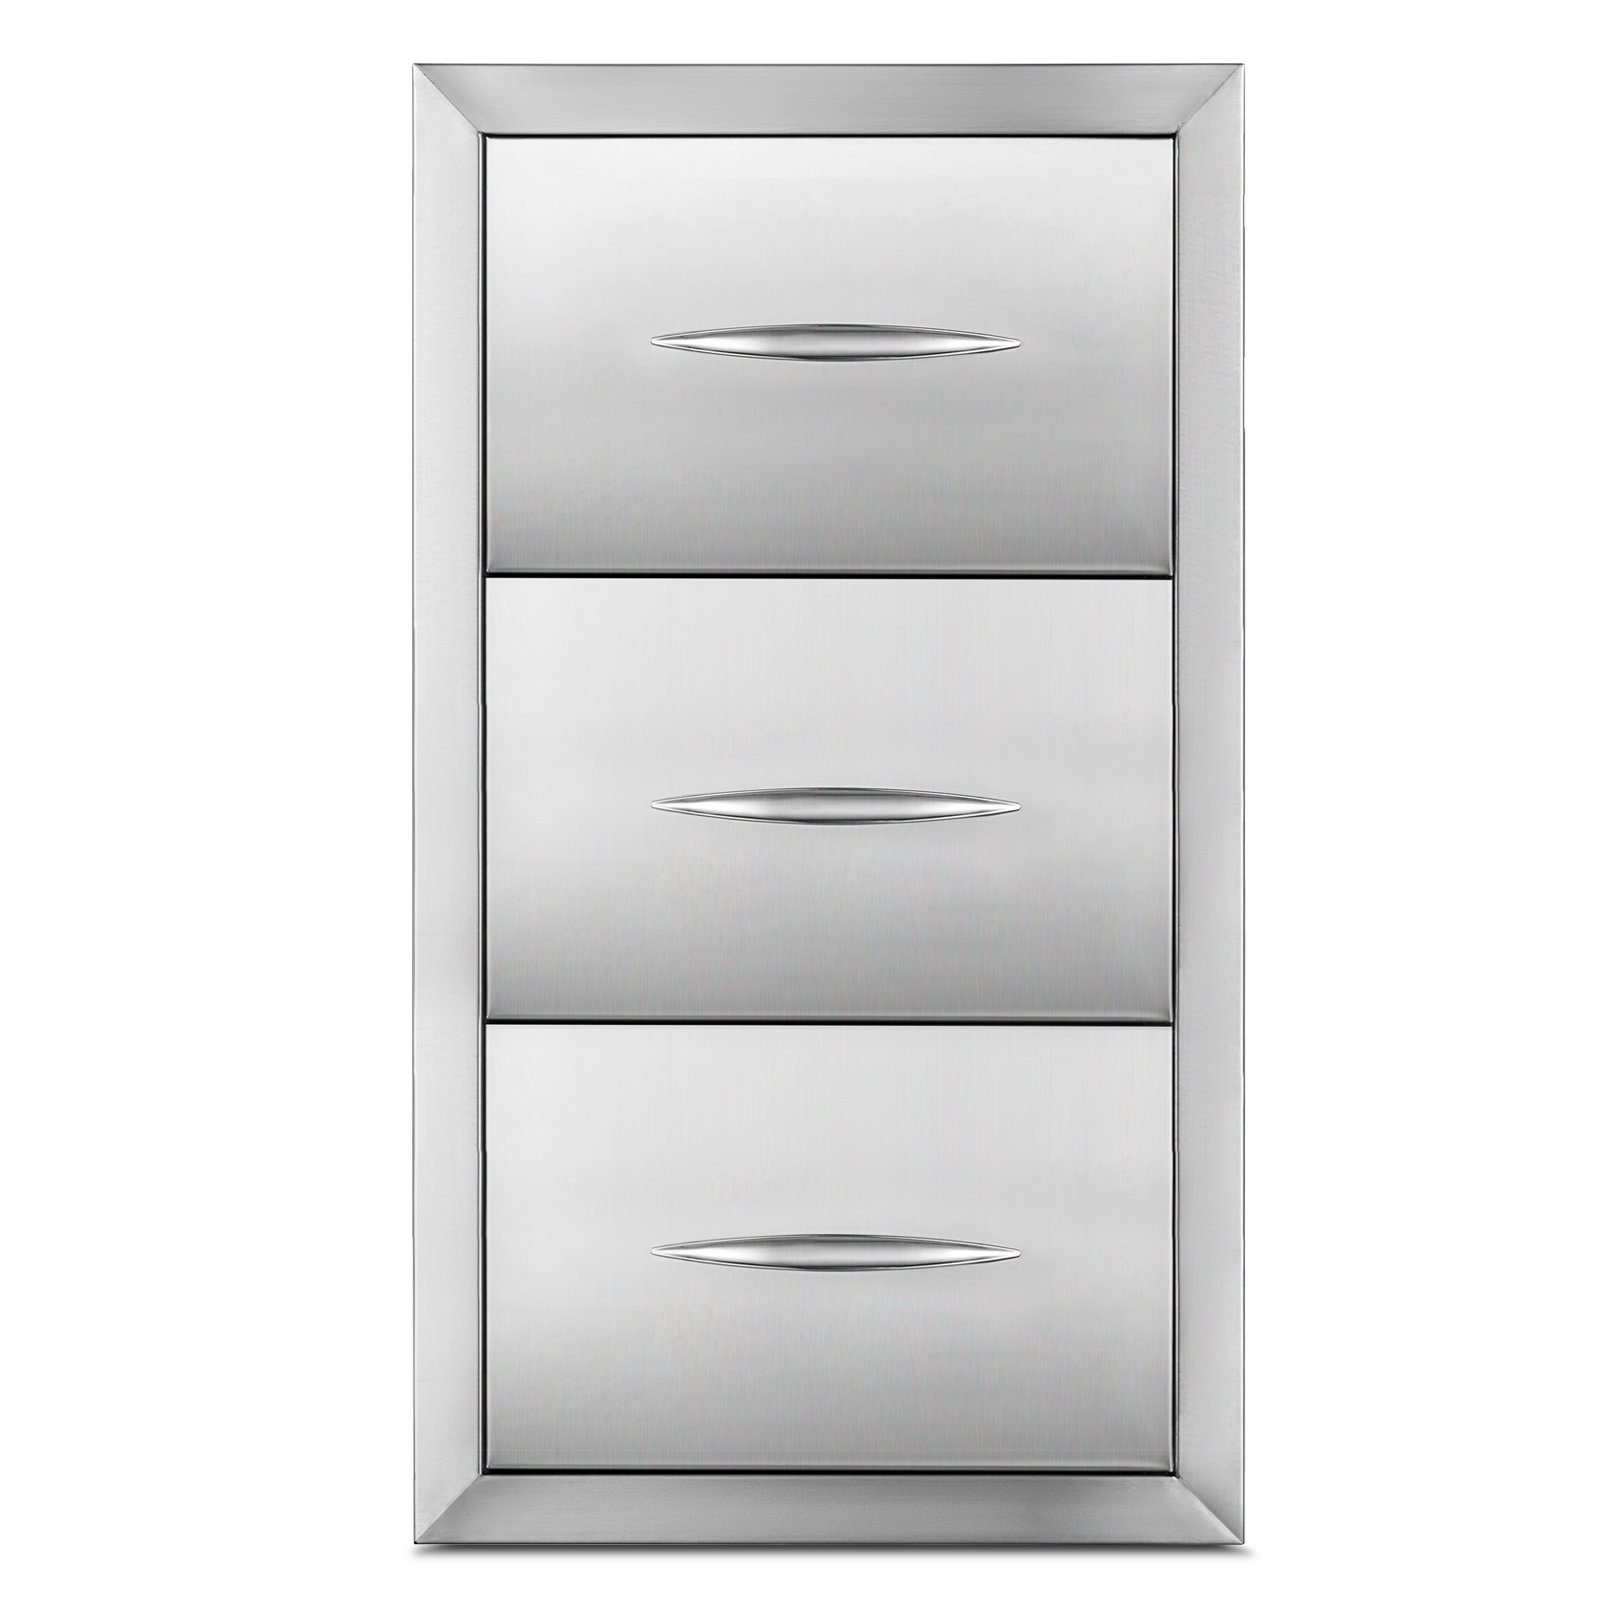 Happybuy Outdoor Kitchen Drawer 30''x17'' Stainless Steel BBQ Island Drawer Storage with Chrome Handle Triple Access Drawer Flush Mount Sliver Double Access Drawer (Outdoor Kitchen Drawer 30''x17'') by Happybuy